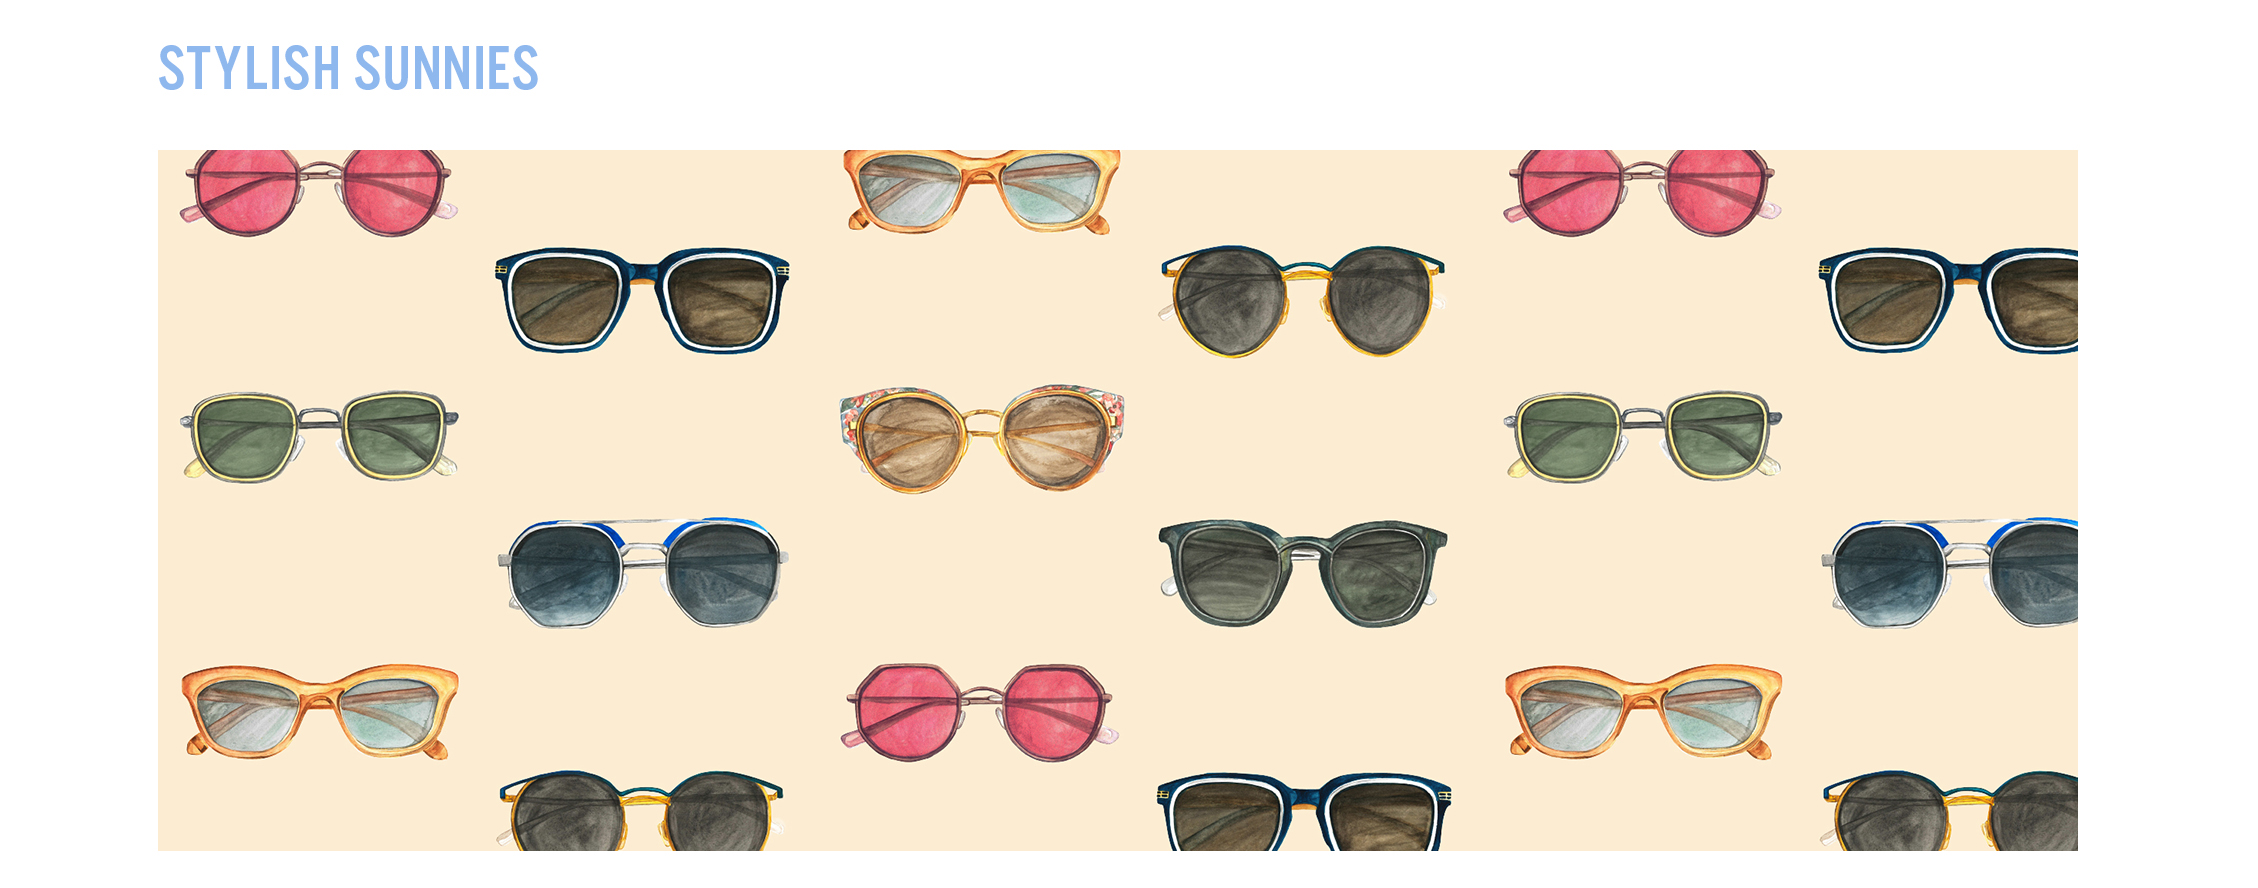 Wallpapers for Blog_Stylish Sunnies.jpg